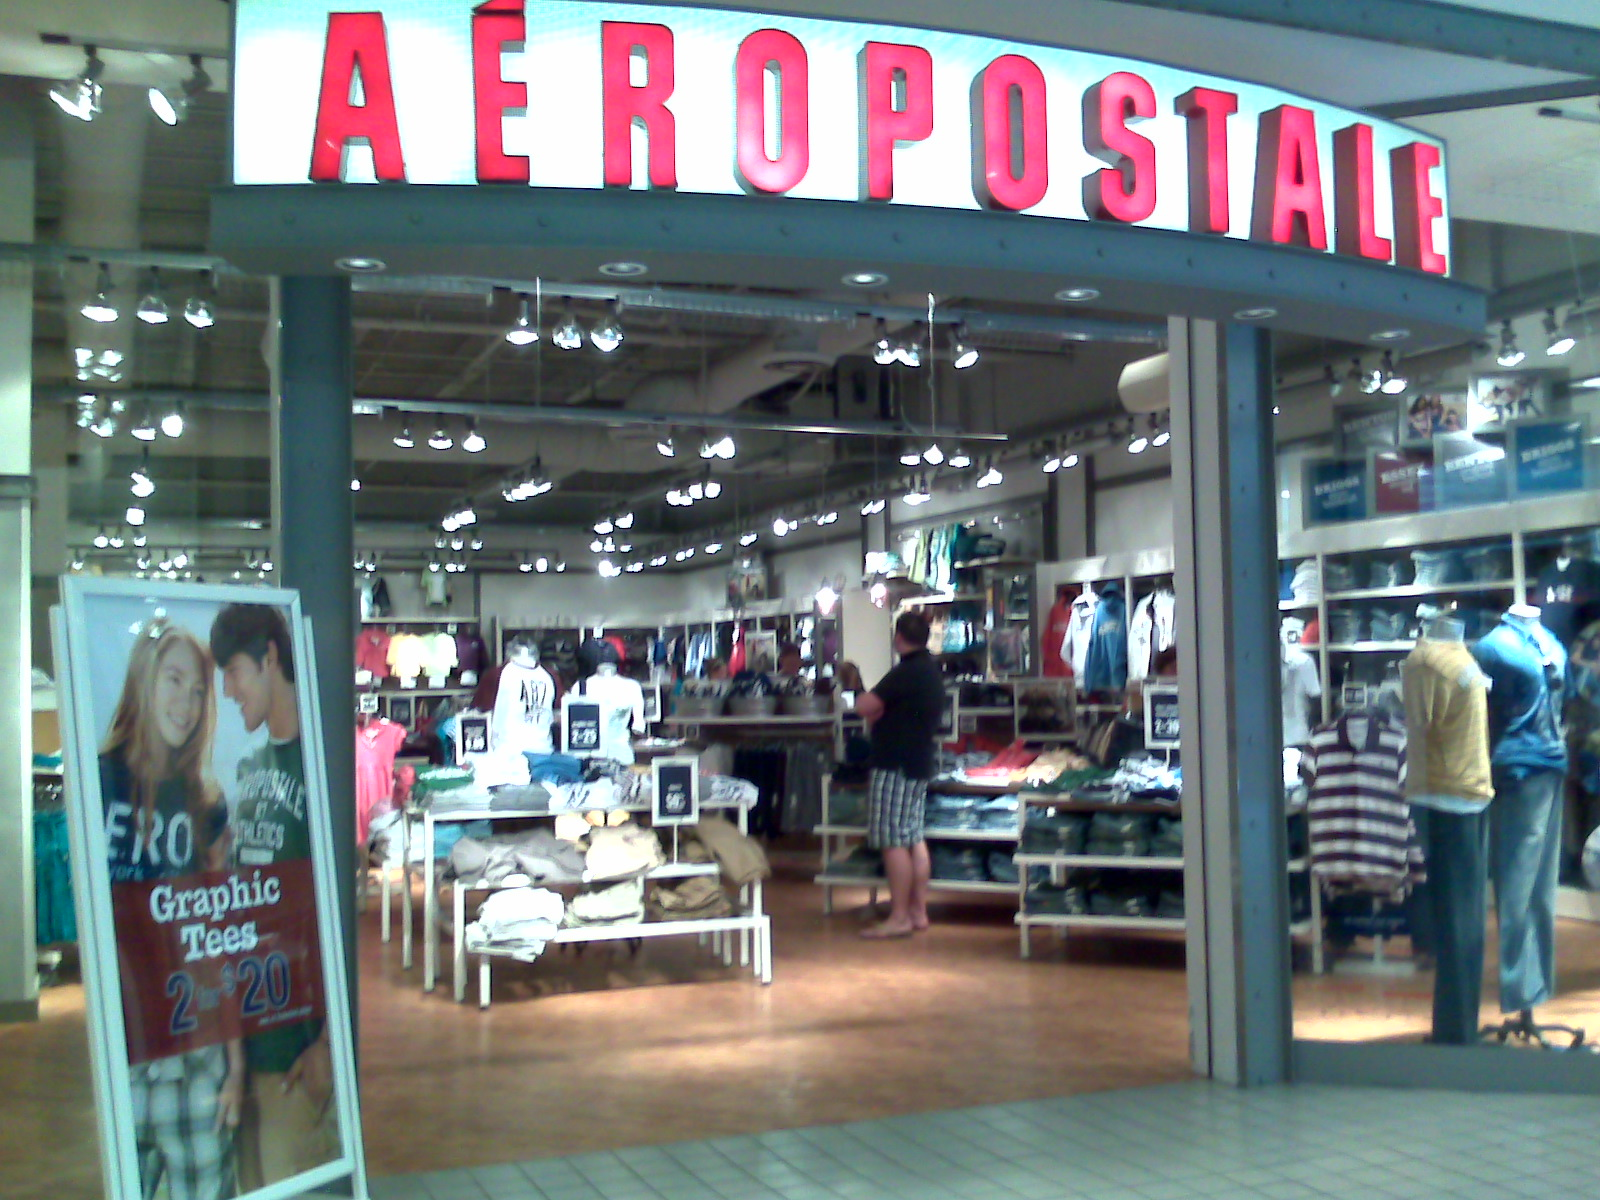 Aeropostale in East Palo Alto, CA. About Search Results. About Search Results. YP - The Real Yellow Pages SM - helps you find the right local businesses to meet your specific needs. Search results are sorted by a combination of factors to give you a set of choices in response to your search criteria. These factors are similar to those you might.